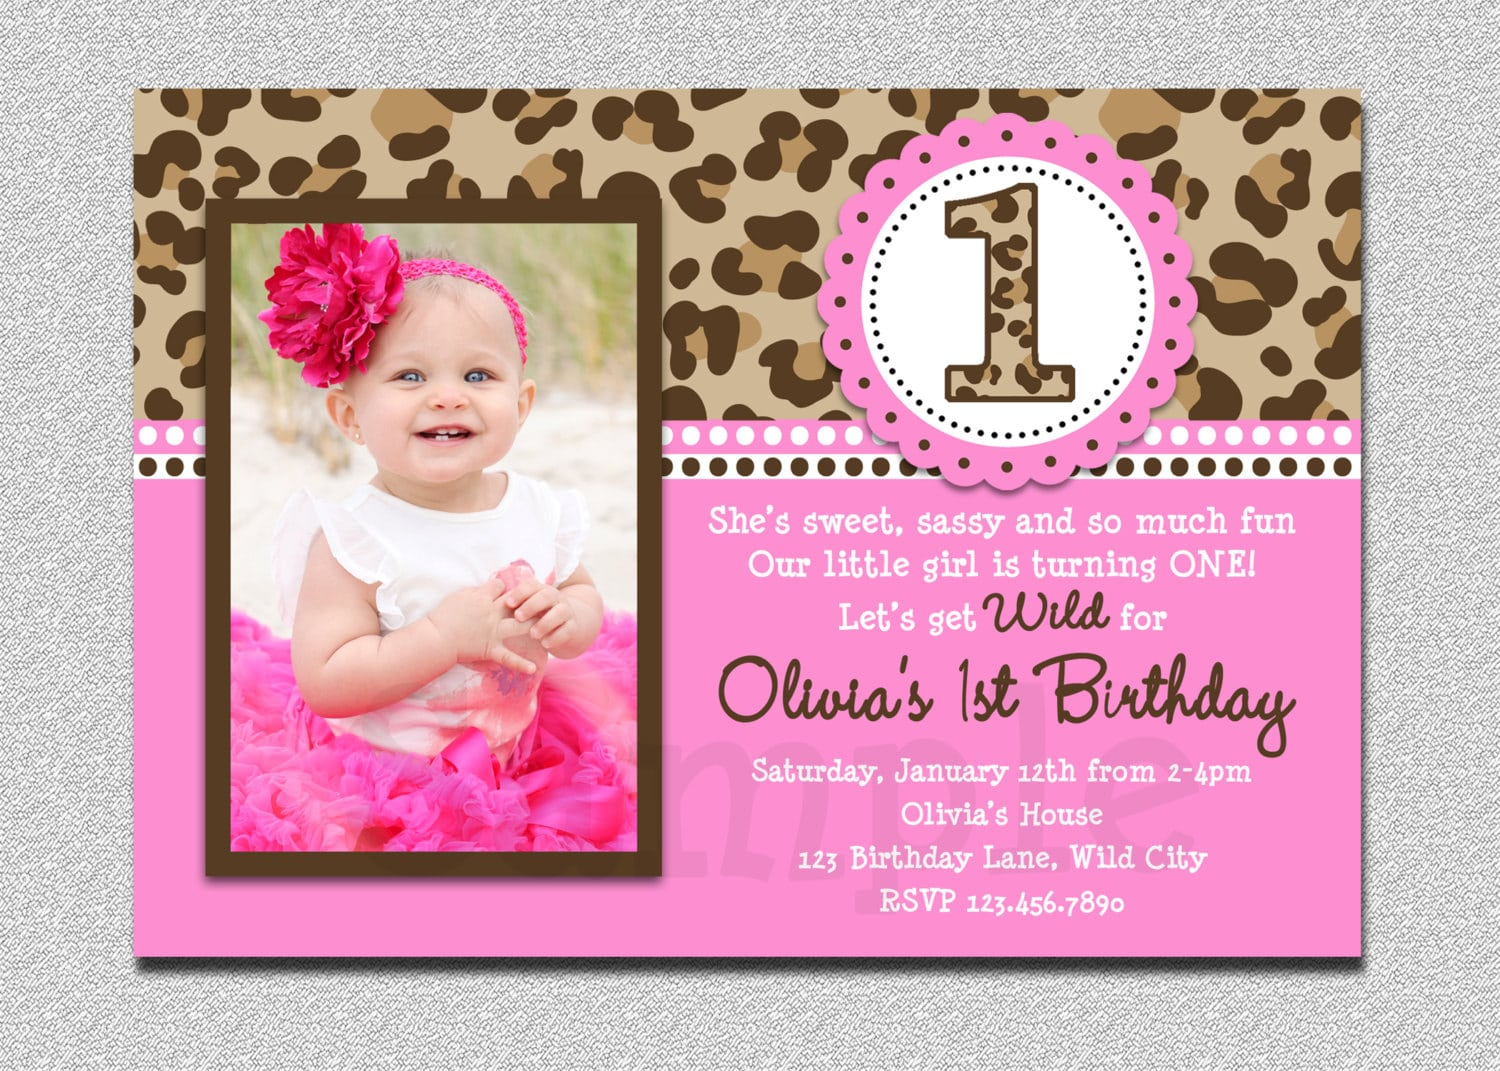 1st Birthday Party Invitations Pictures About 1st Birthday Party